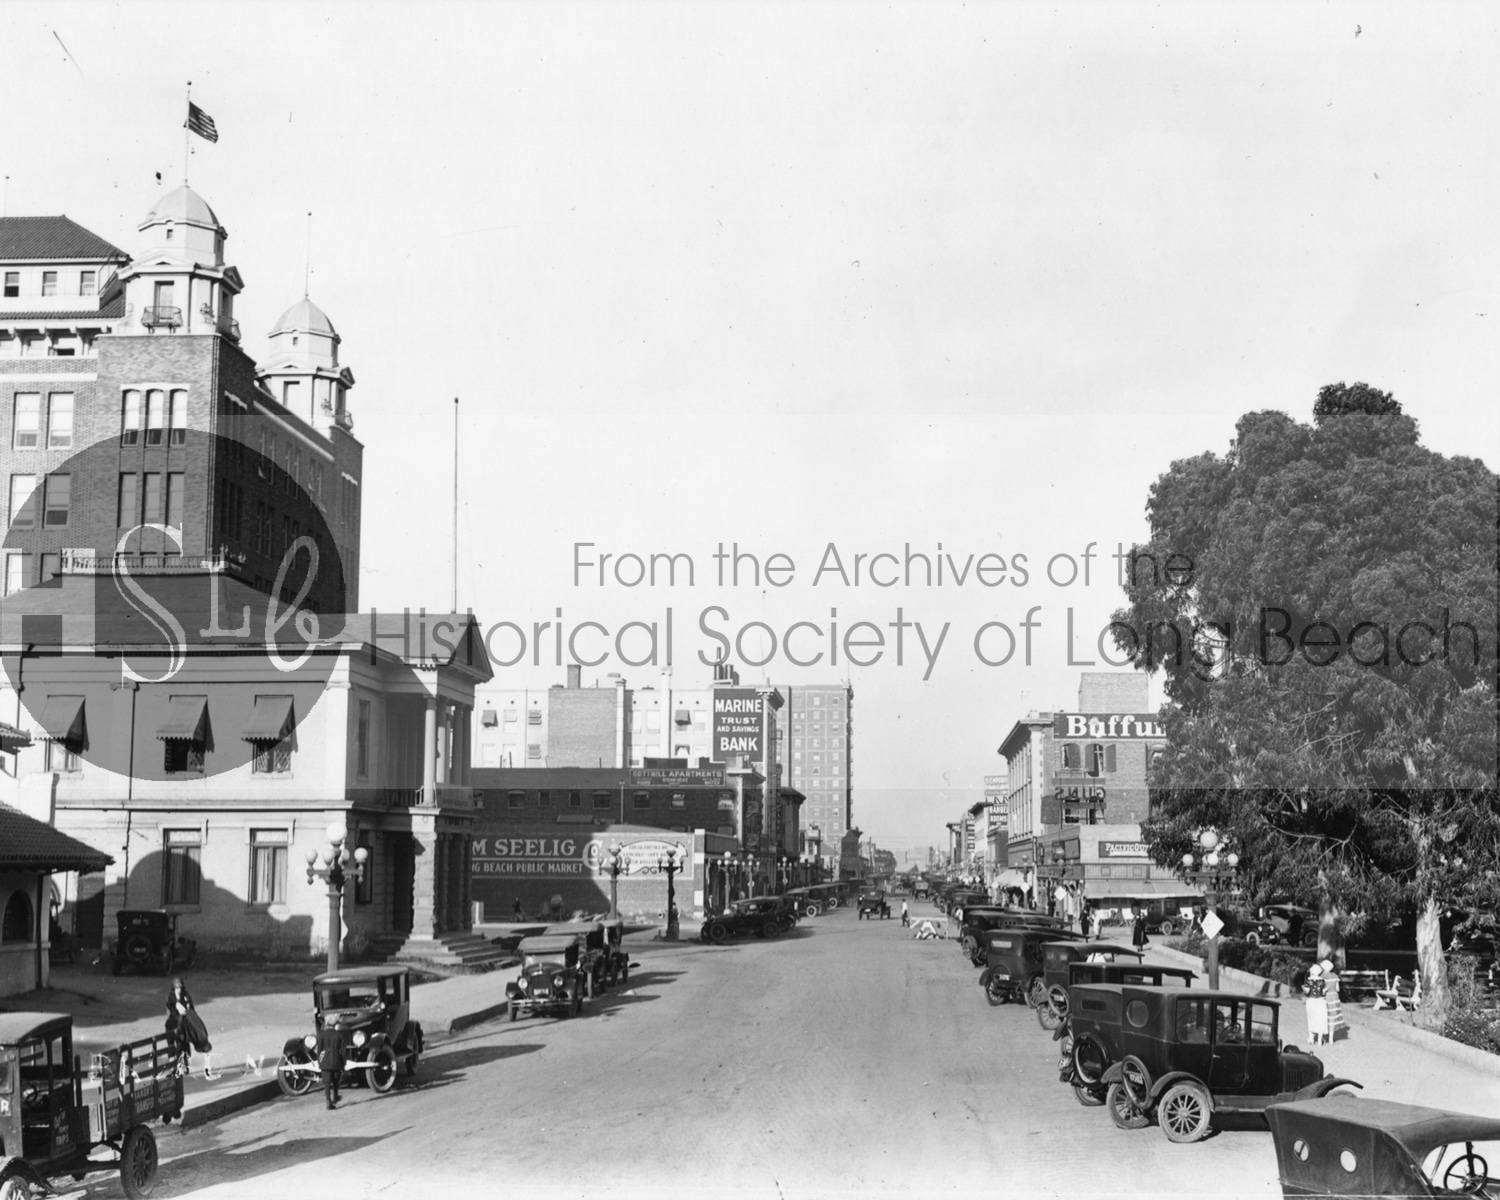 Historical society long beach street black and white photograph